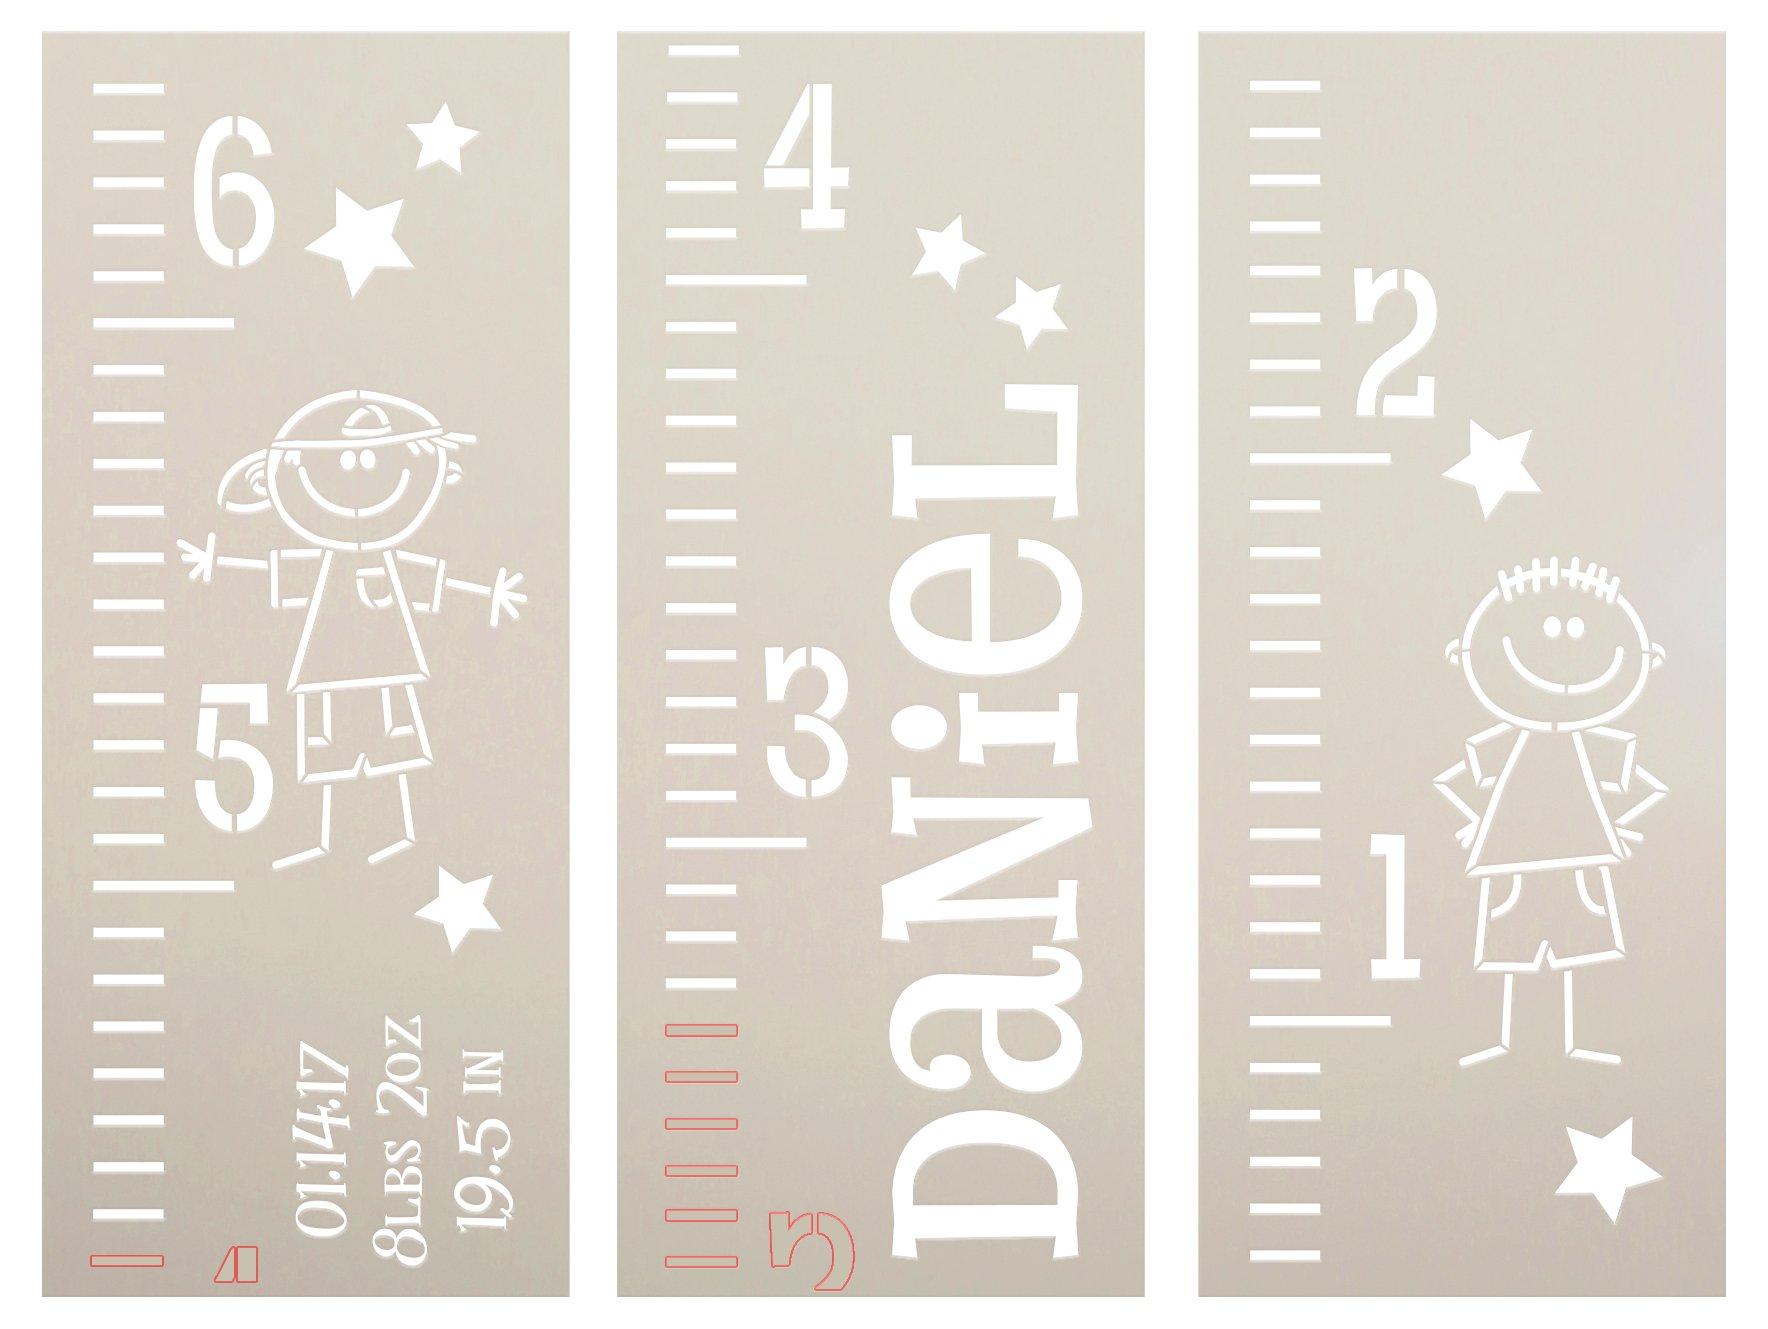 Personalized Boy Growth Chart Ruler 3-Part Stencil by StudioR12 | DIY Bedroom & Nursery Wall Decor | Craft & Paint Tall Wood Signs | Size (6 ft)